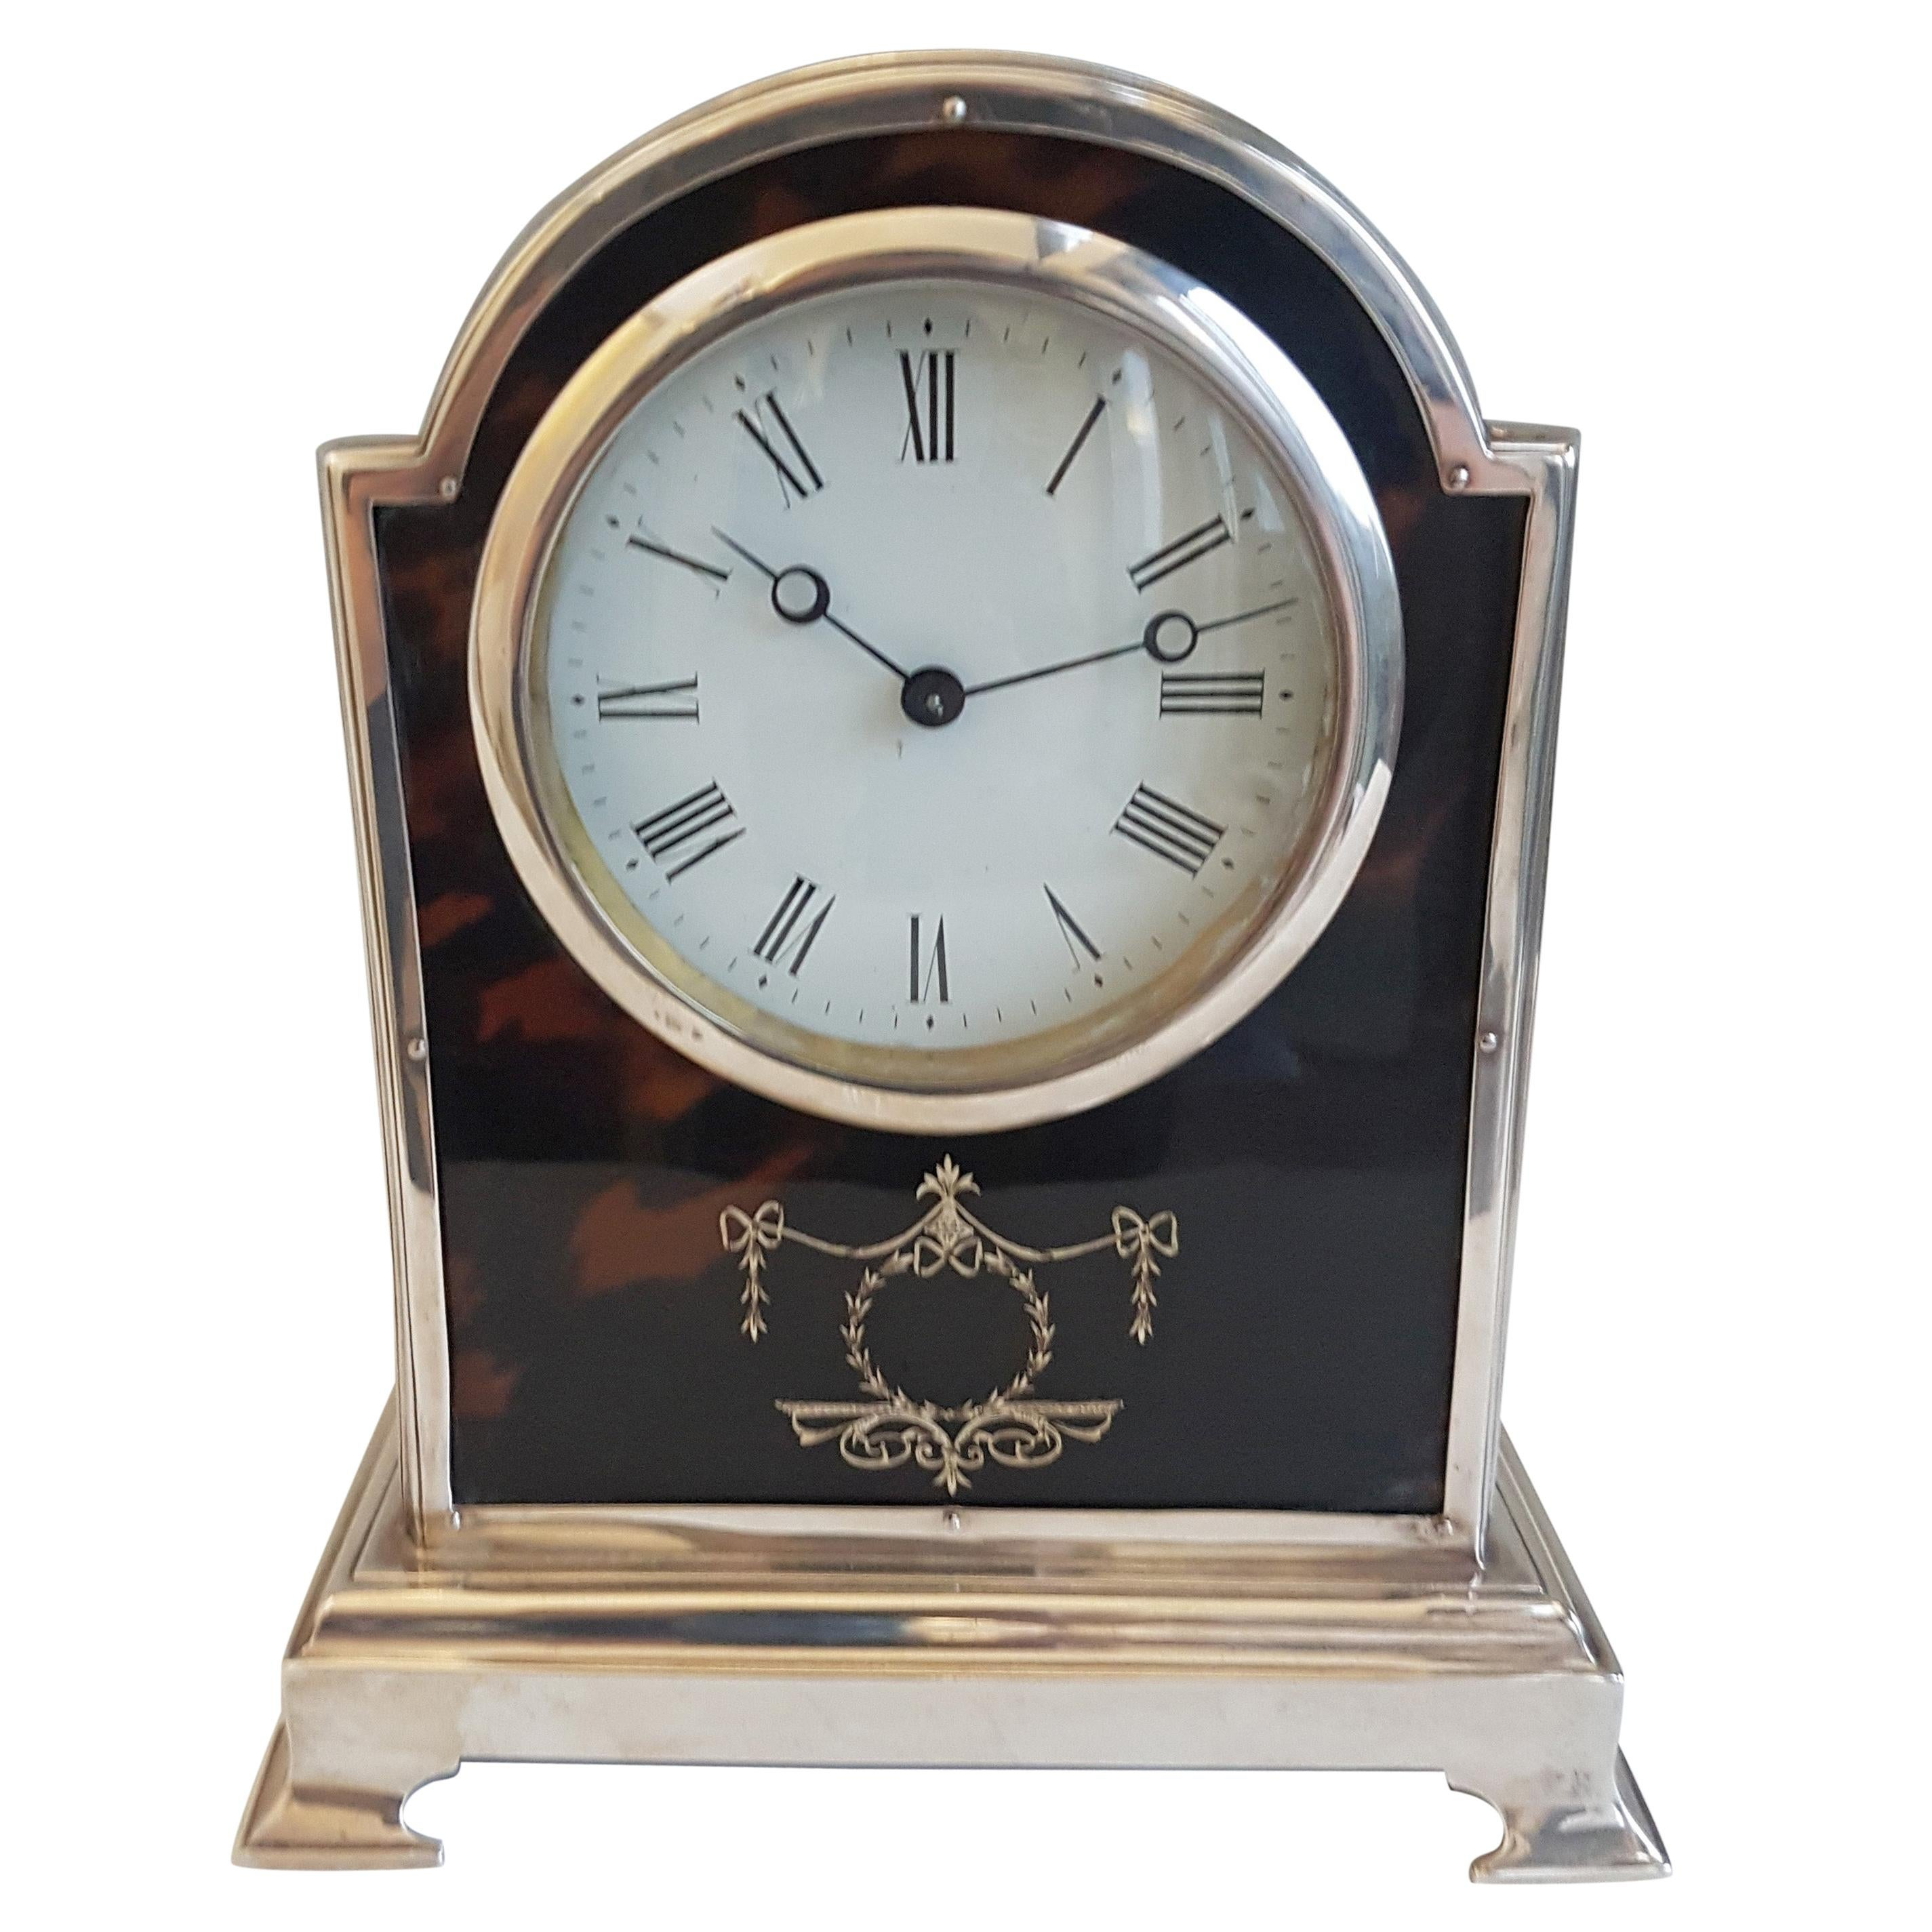 Fine Tortoiseshell and Silver Pique Domed Topped Mantel Clock by Henry Matthews